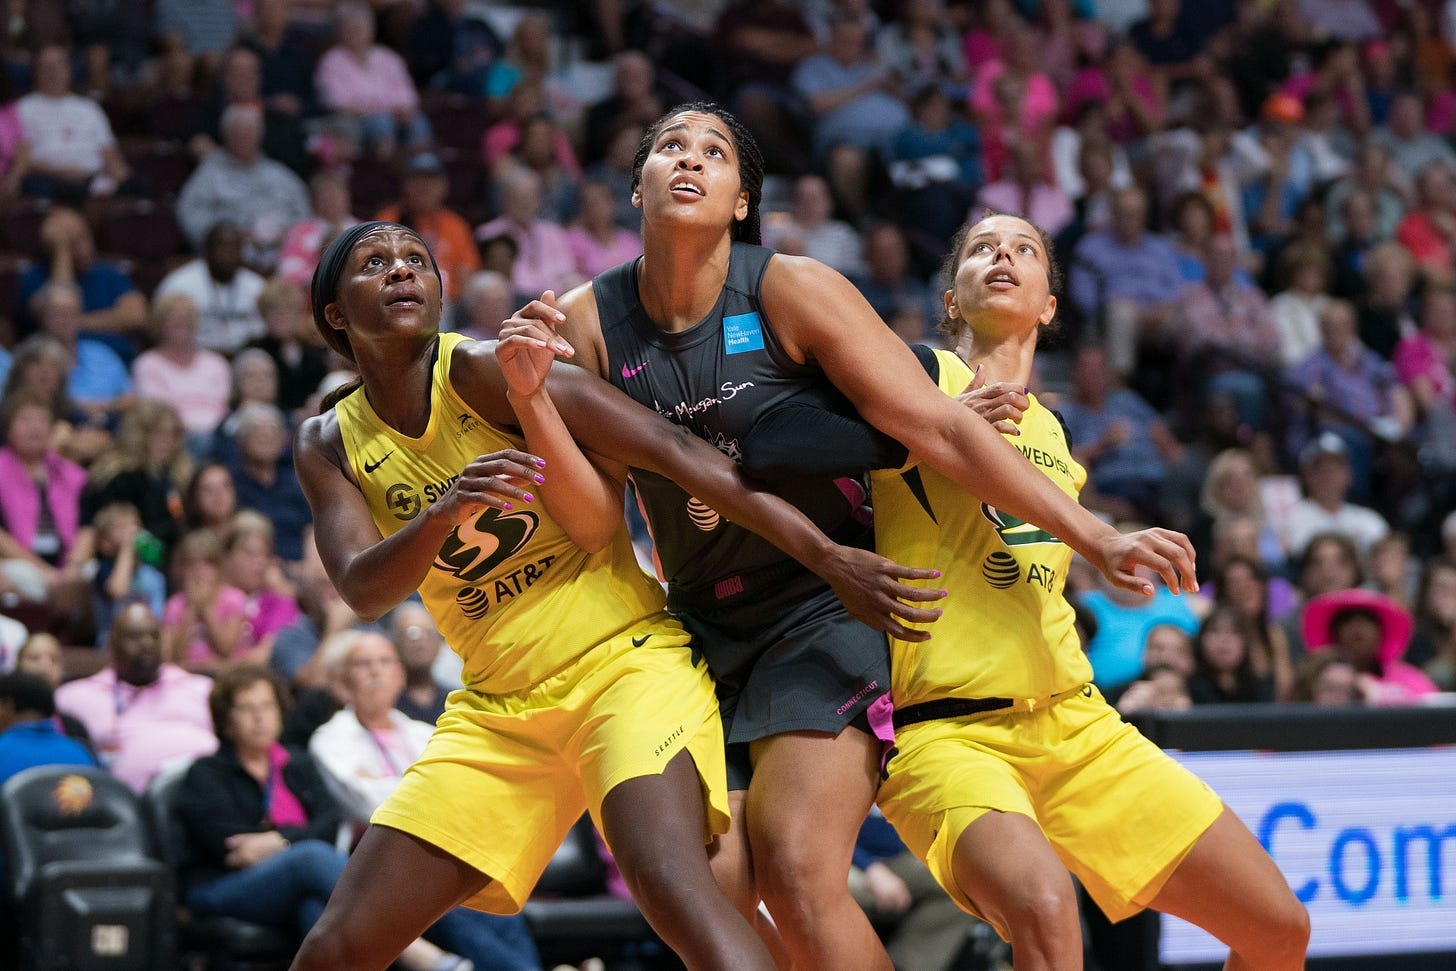 Seattle Storm forward Crystal Langhorne (1) Connecticut Sun forward Brionna Jones (42) and Seattle Storm forward Alysha Clark (32) battle for position during the WNBA game between the Seattle Storm and the Connecticut Sun at Mohegan Sun Arena, Uncasville, Connecticut, USA on August 16, 2019. Photo Credit: Chris Poss